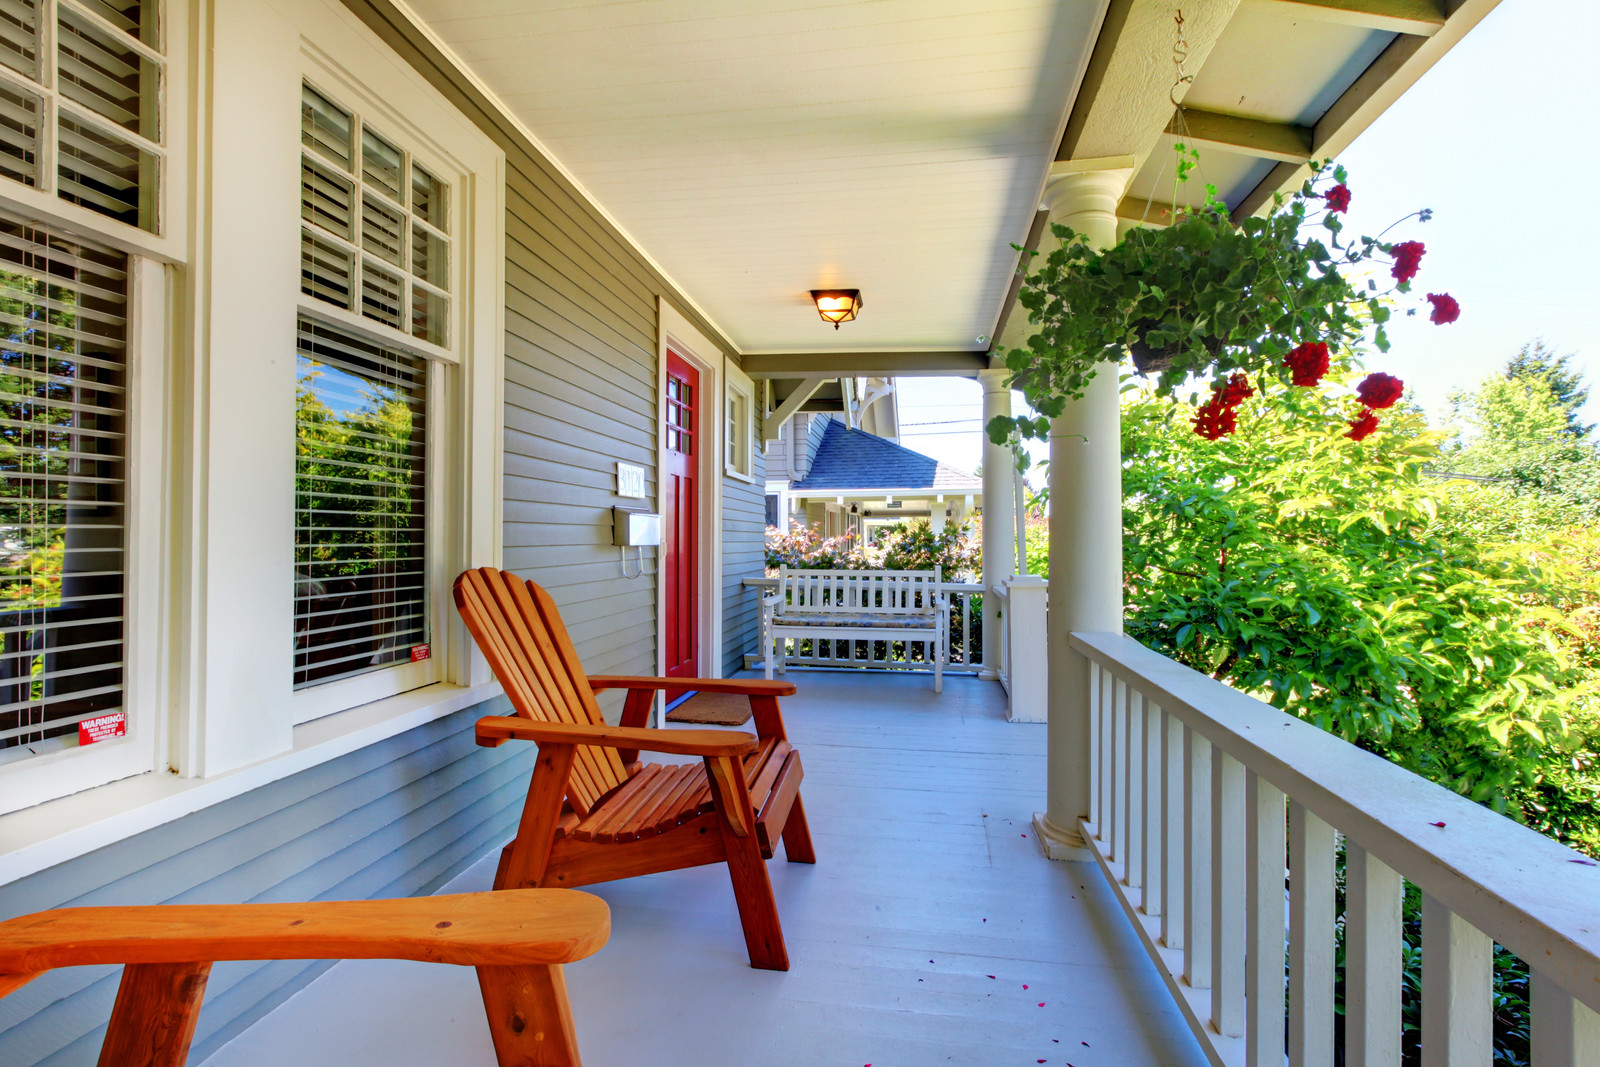 Front porch of the grey house with white railings with hanging red geraniums, Adirondack chair and white bench with shrubs in the front